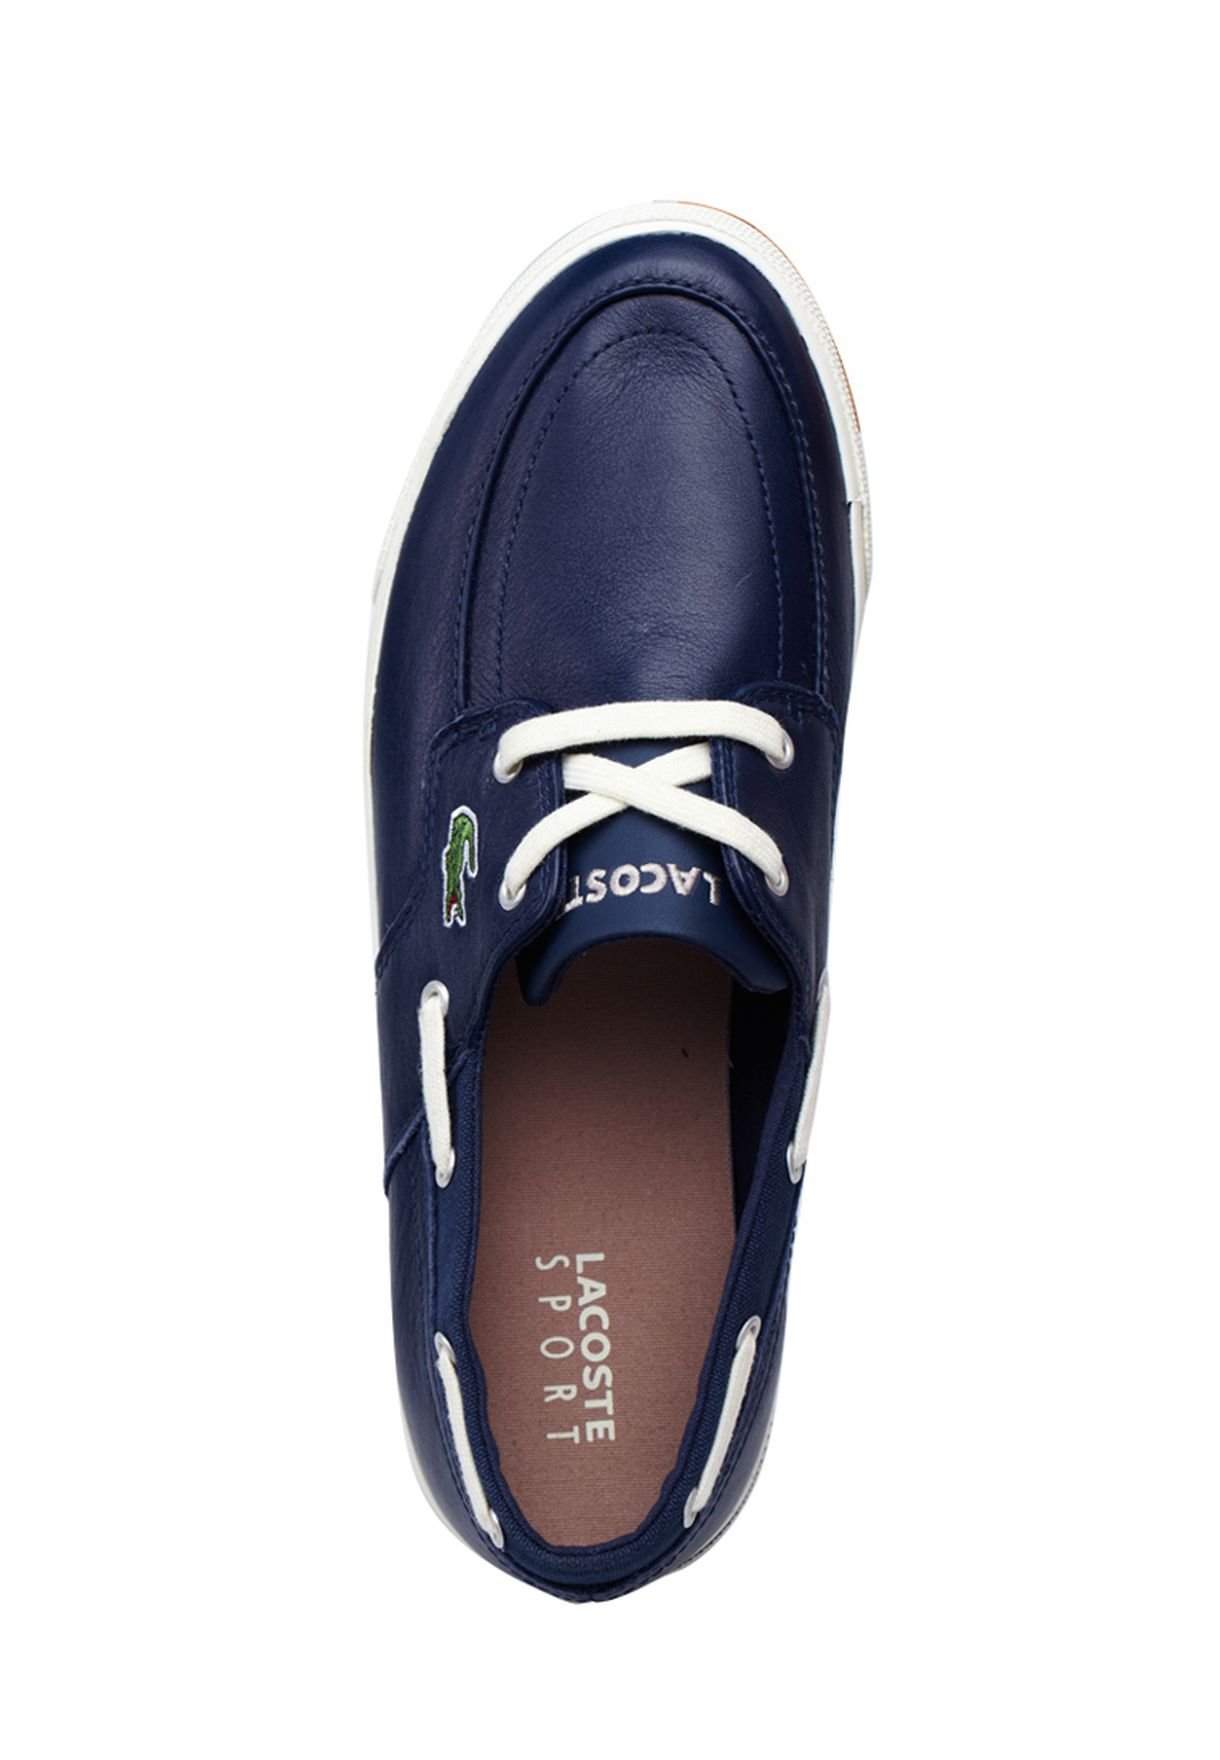 f1e7e1ac7cce83 Shop Lacoste blue Newton Boat Boat Shoes 24SPM1238-1W6 for ...